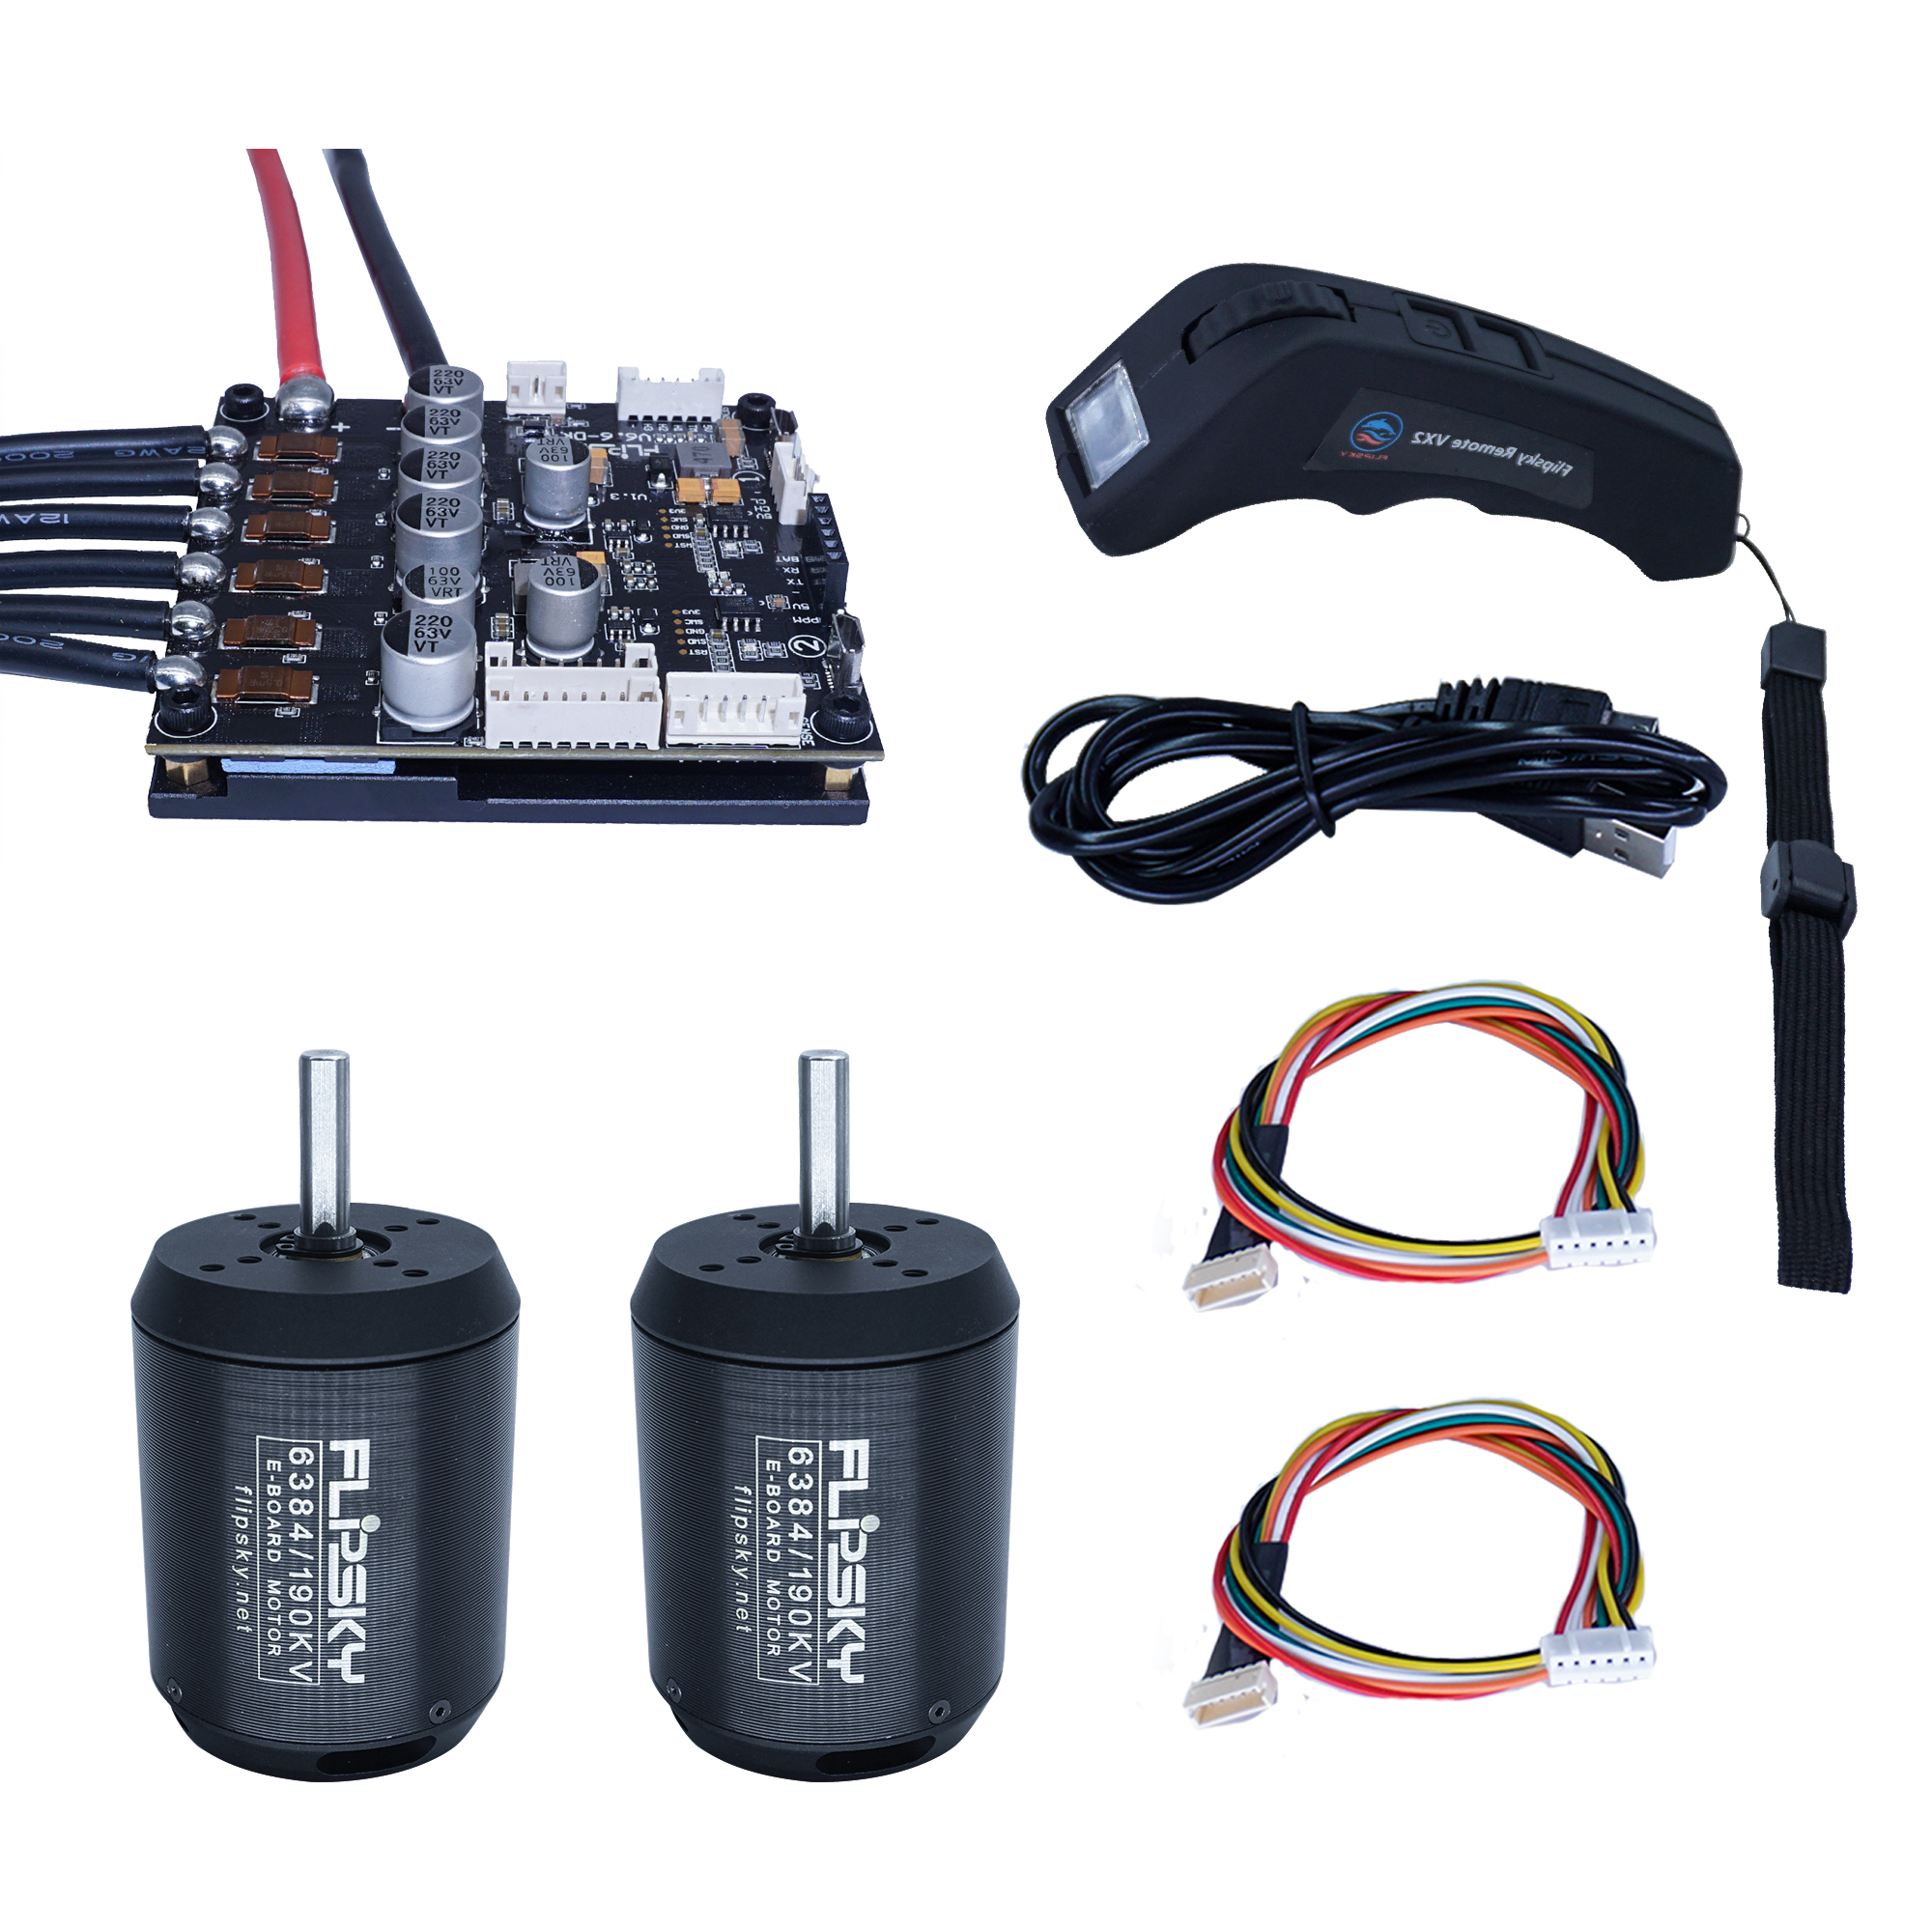 Sale Dual Drive Skateboard Motor + VESC 6.6 Plus + VX2 Screen Remote Eskateboard Speed Controller Hobby Kit 16% Off Group D8